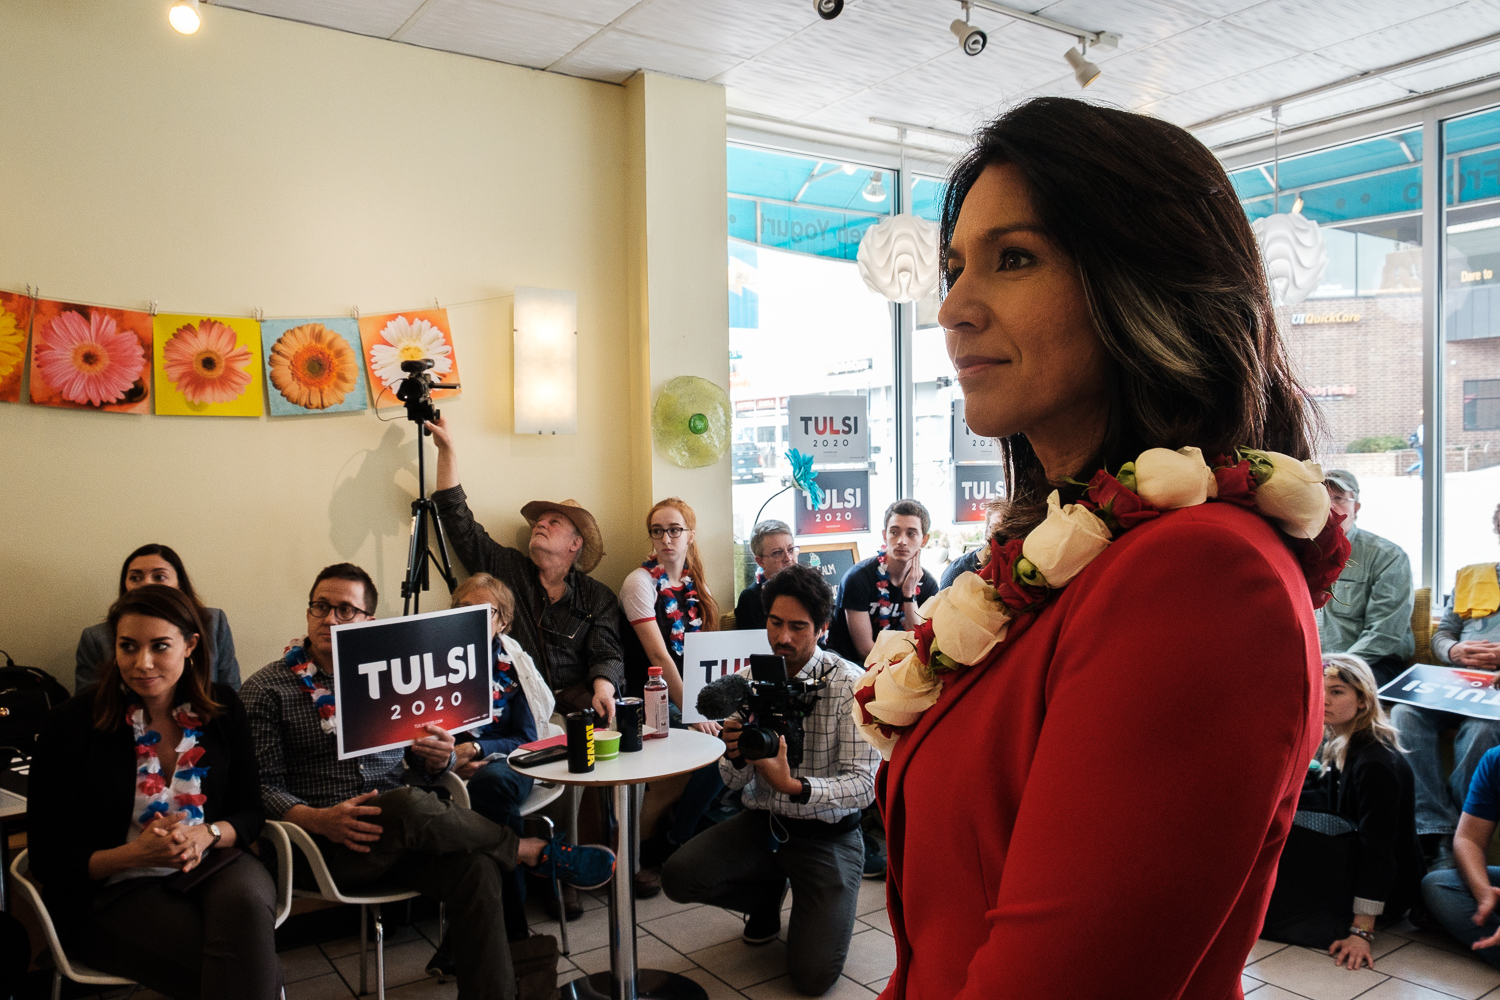 Rep. Tulsi Gabbard, D-Hawaii listens to a question during a meet-and-greet at Yotopia in Iowa City on Tuesday, April 16, 2019. Attendees gathered to listen to Gabbard discuss topics such as defunding regime changing wars, environmental policies, and medicare for all.